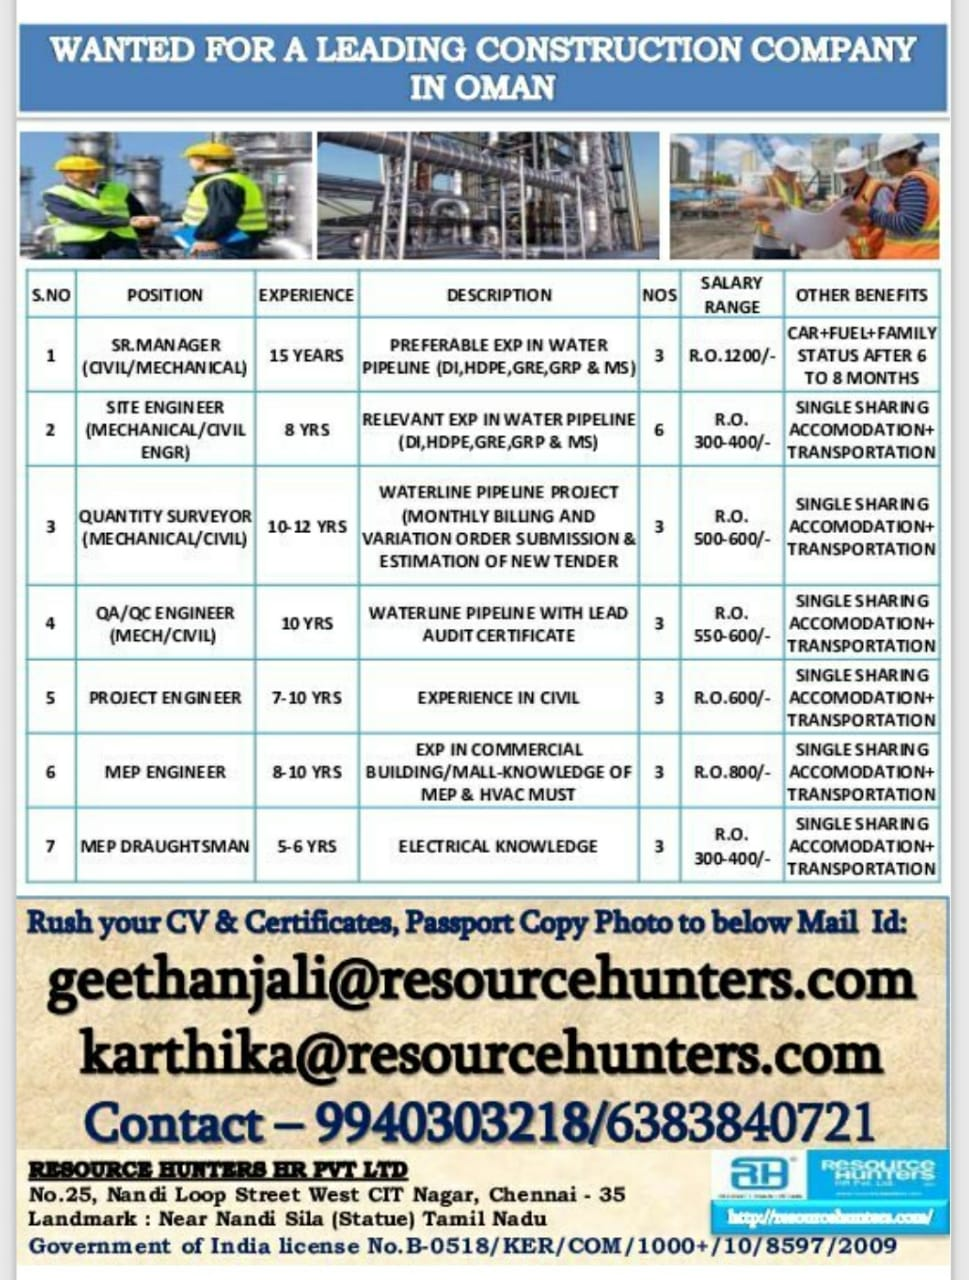 WANTED FOR A LEADING CONSTRUCTION COMPANY IN OMAN